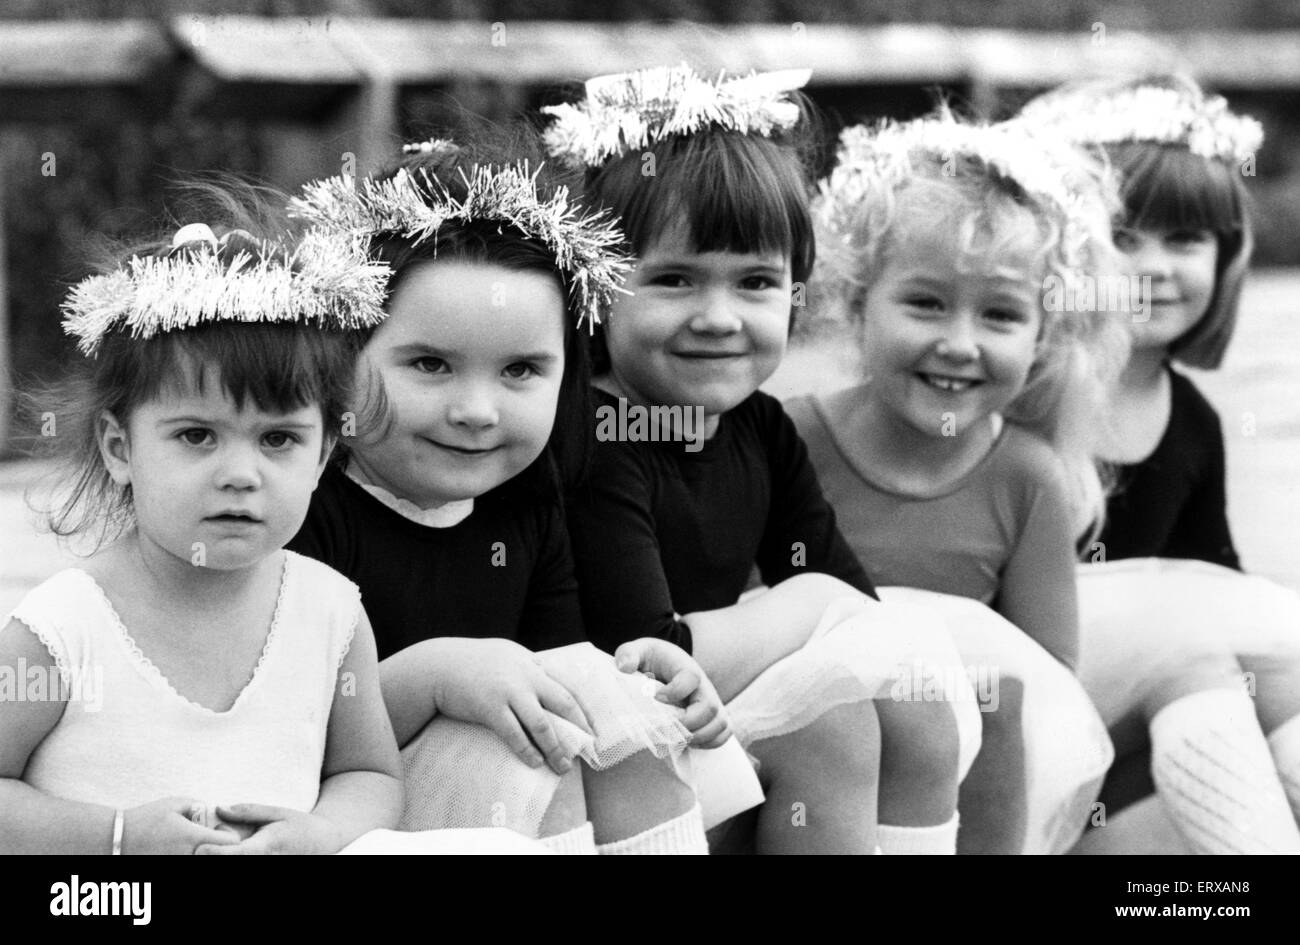 Hannah Needs, aged 2, Claire Todd, aged 4, Rebecca Johnson, aged 4, Stacey Coote, aged 5 and Kay Griffiths, aged - Stock Image